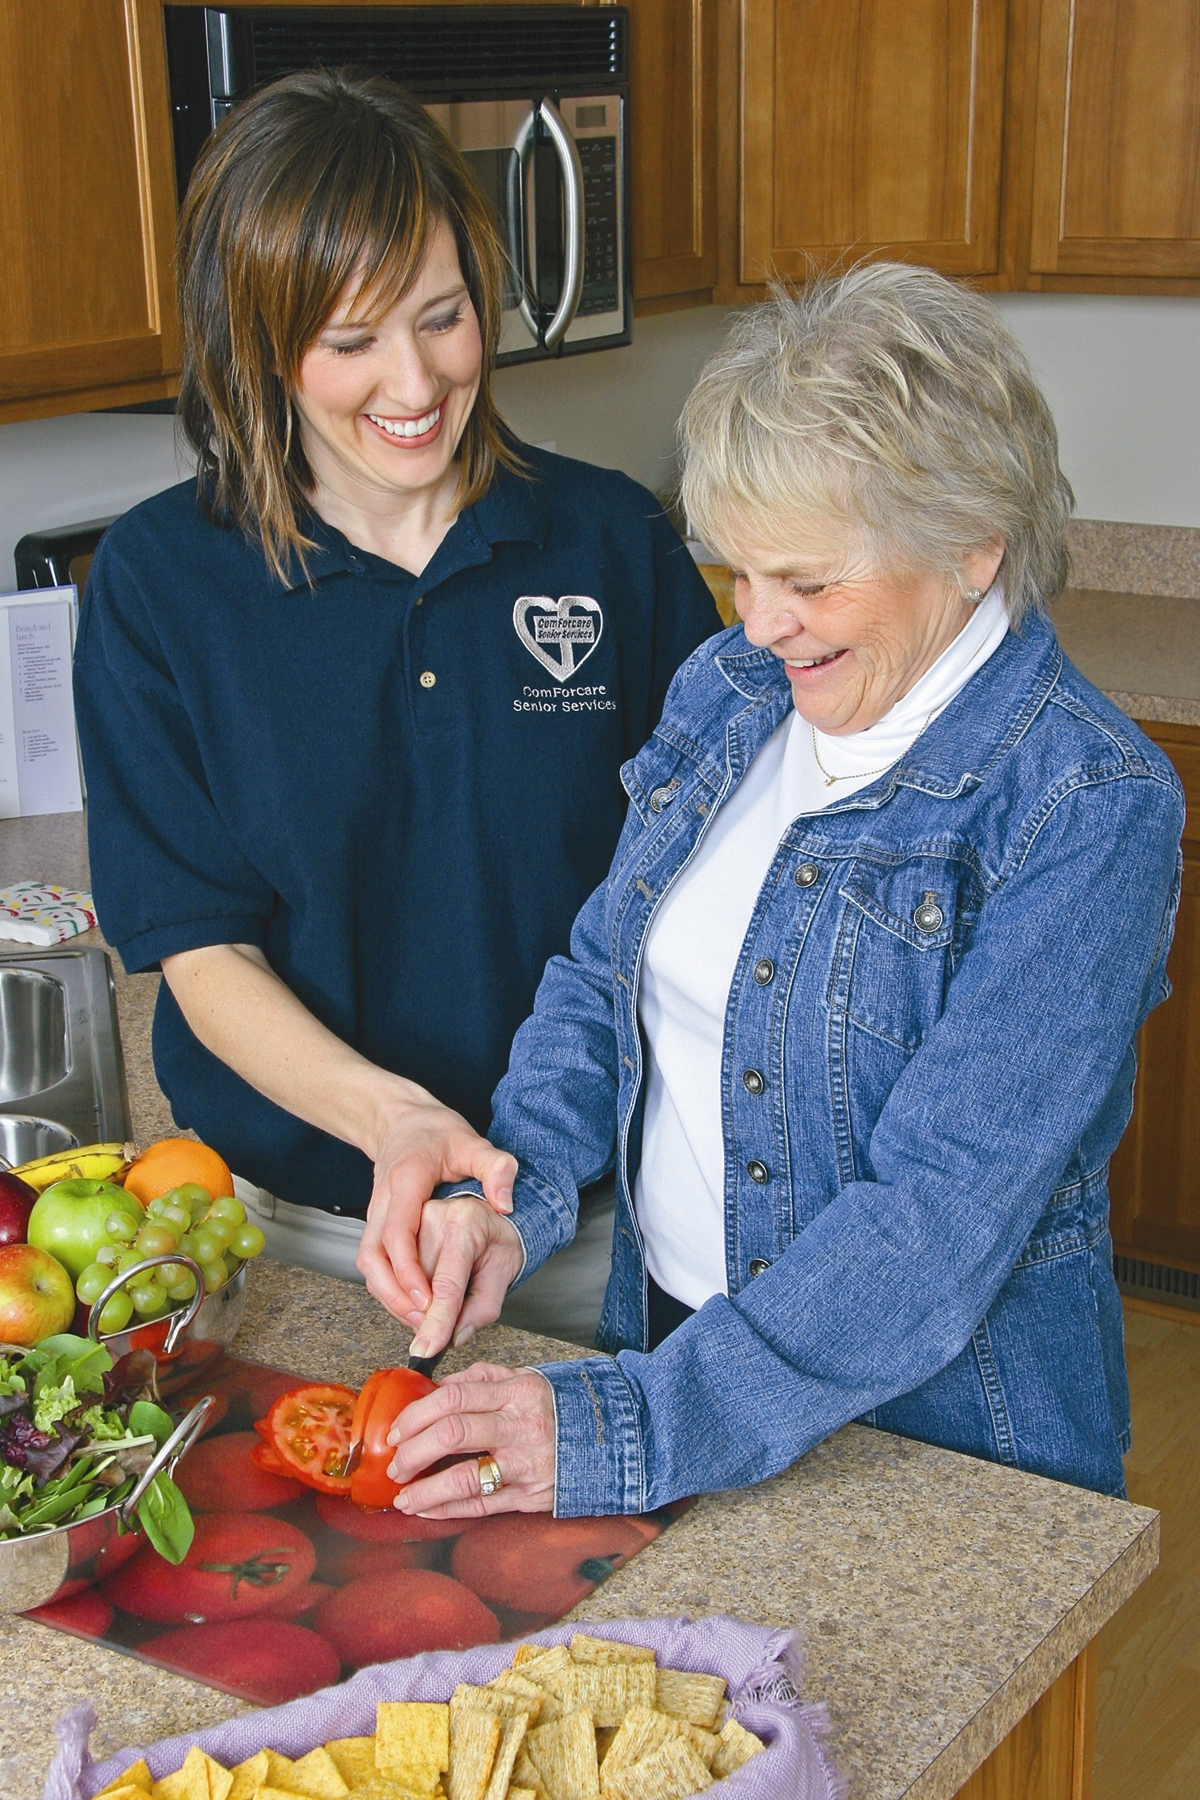 ComForcare Senior Services is an in-home care provider based in Bloomfield Hills, Mich.